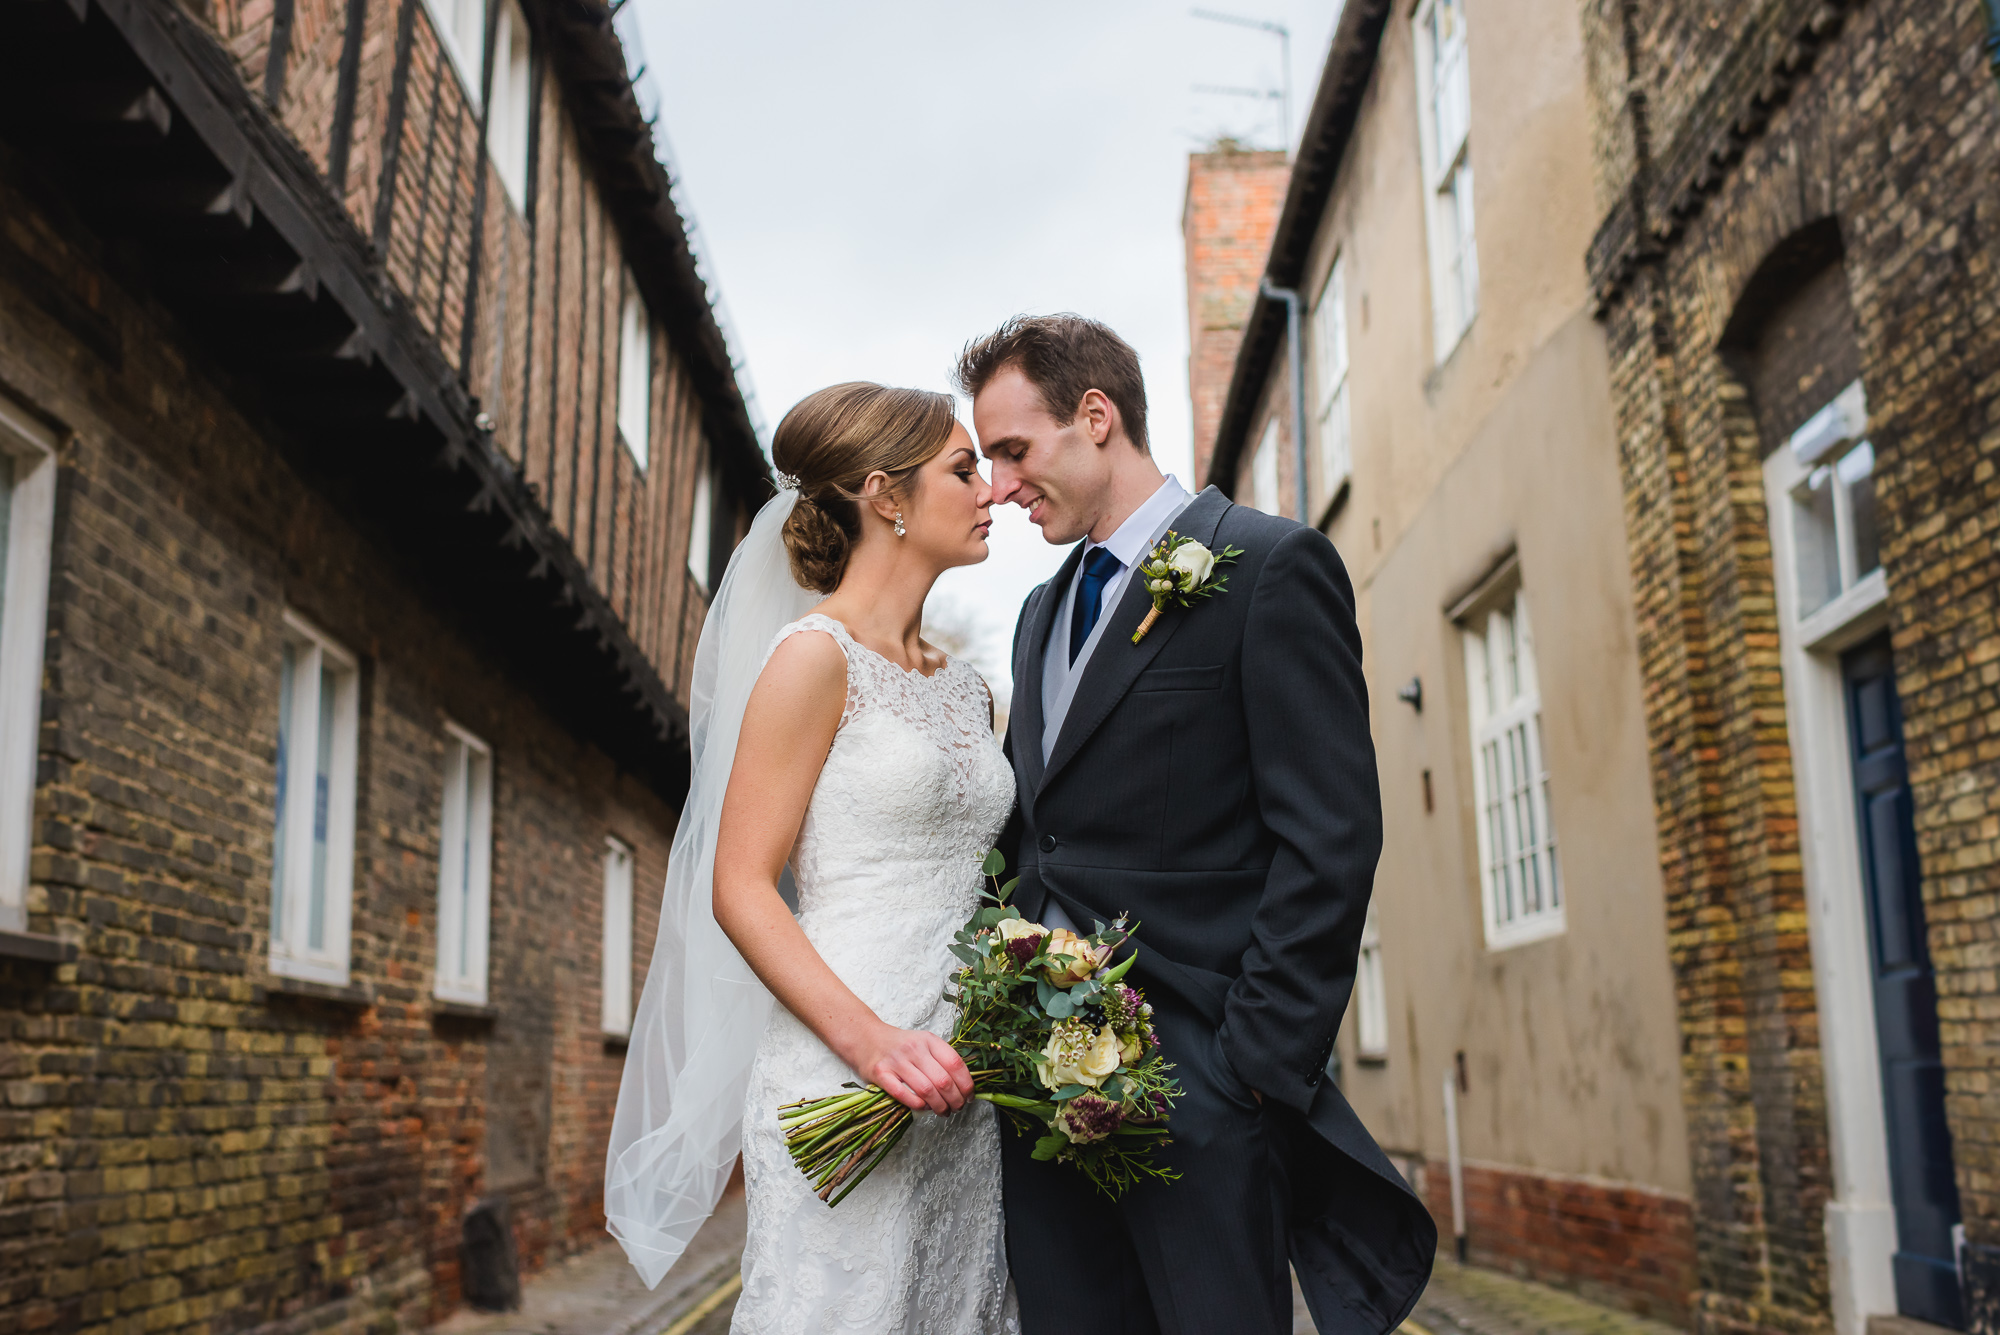 King's Lynn Town Hall wedding photography – Hannah & Ed